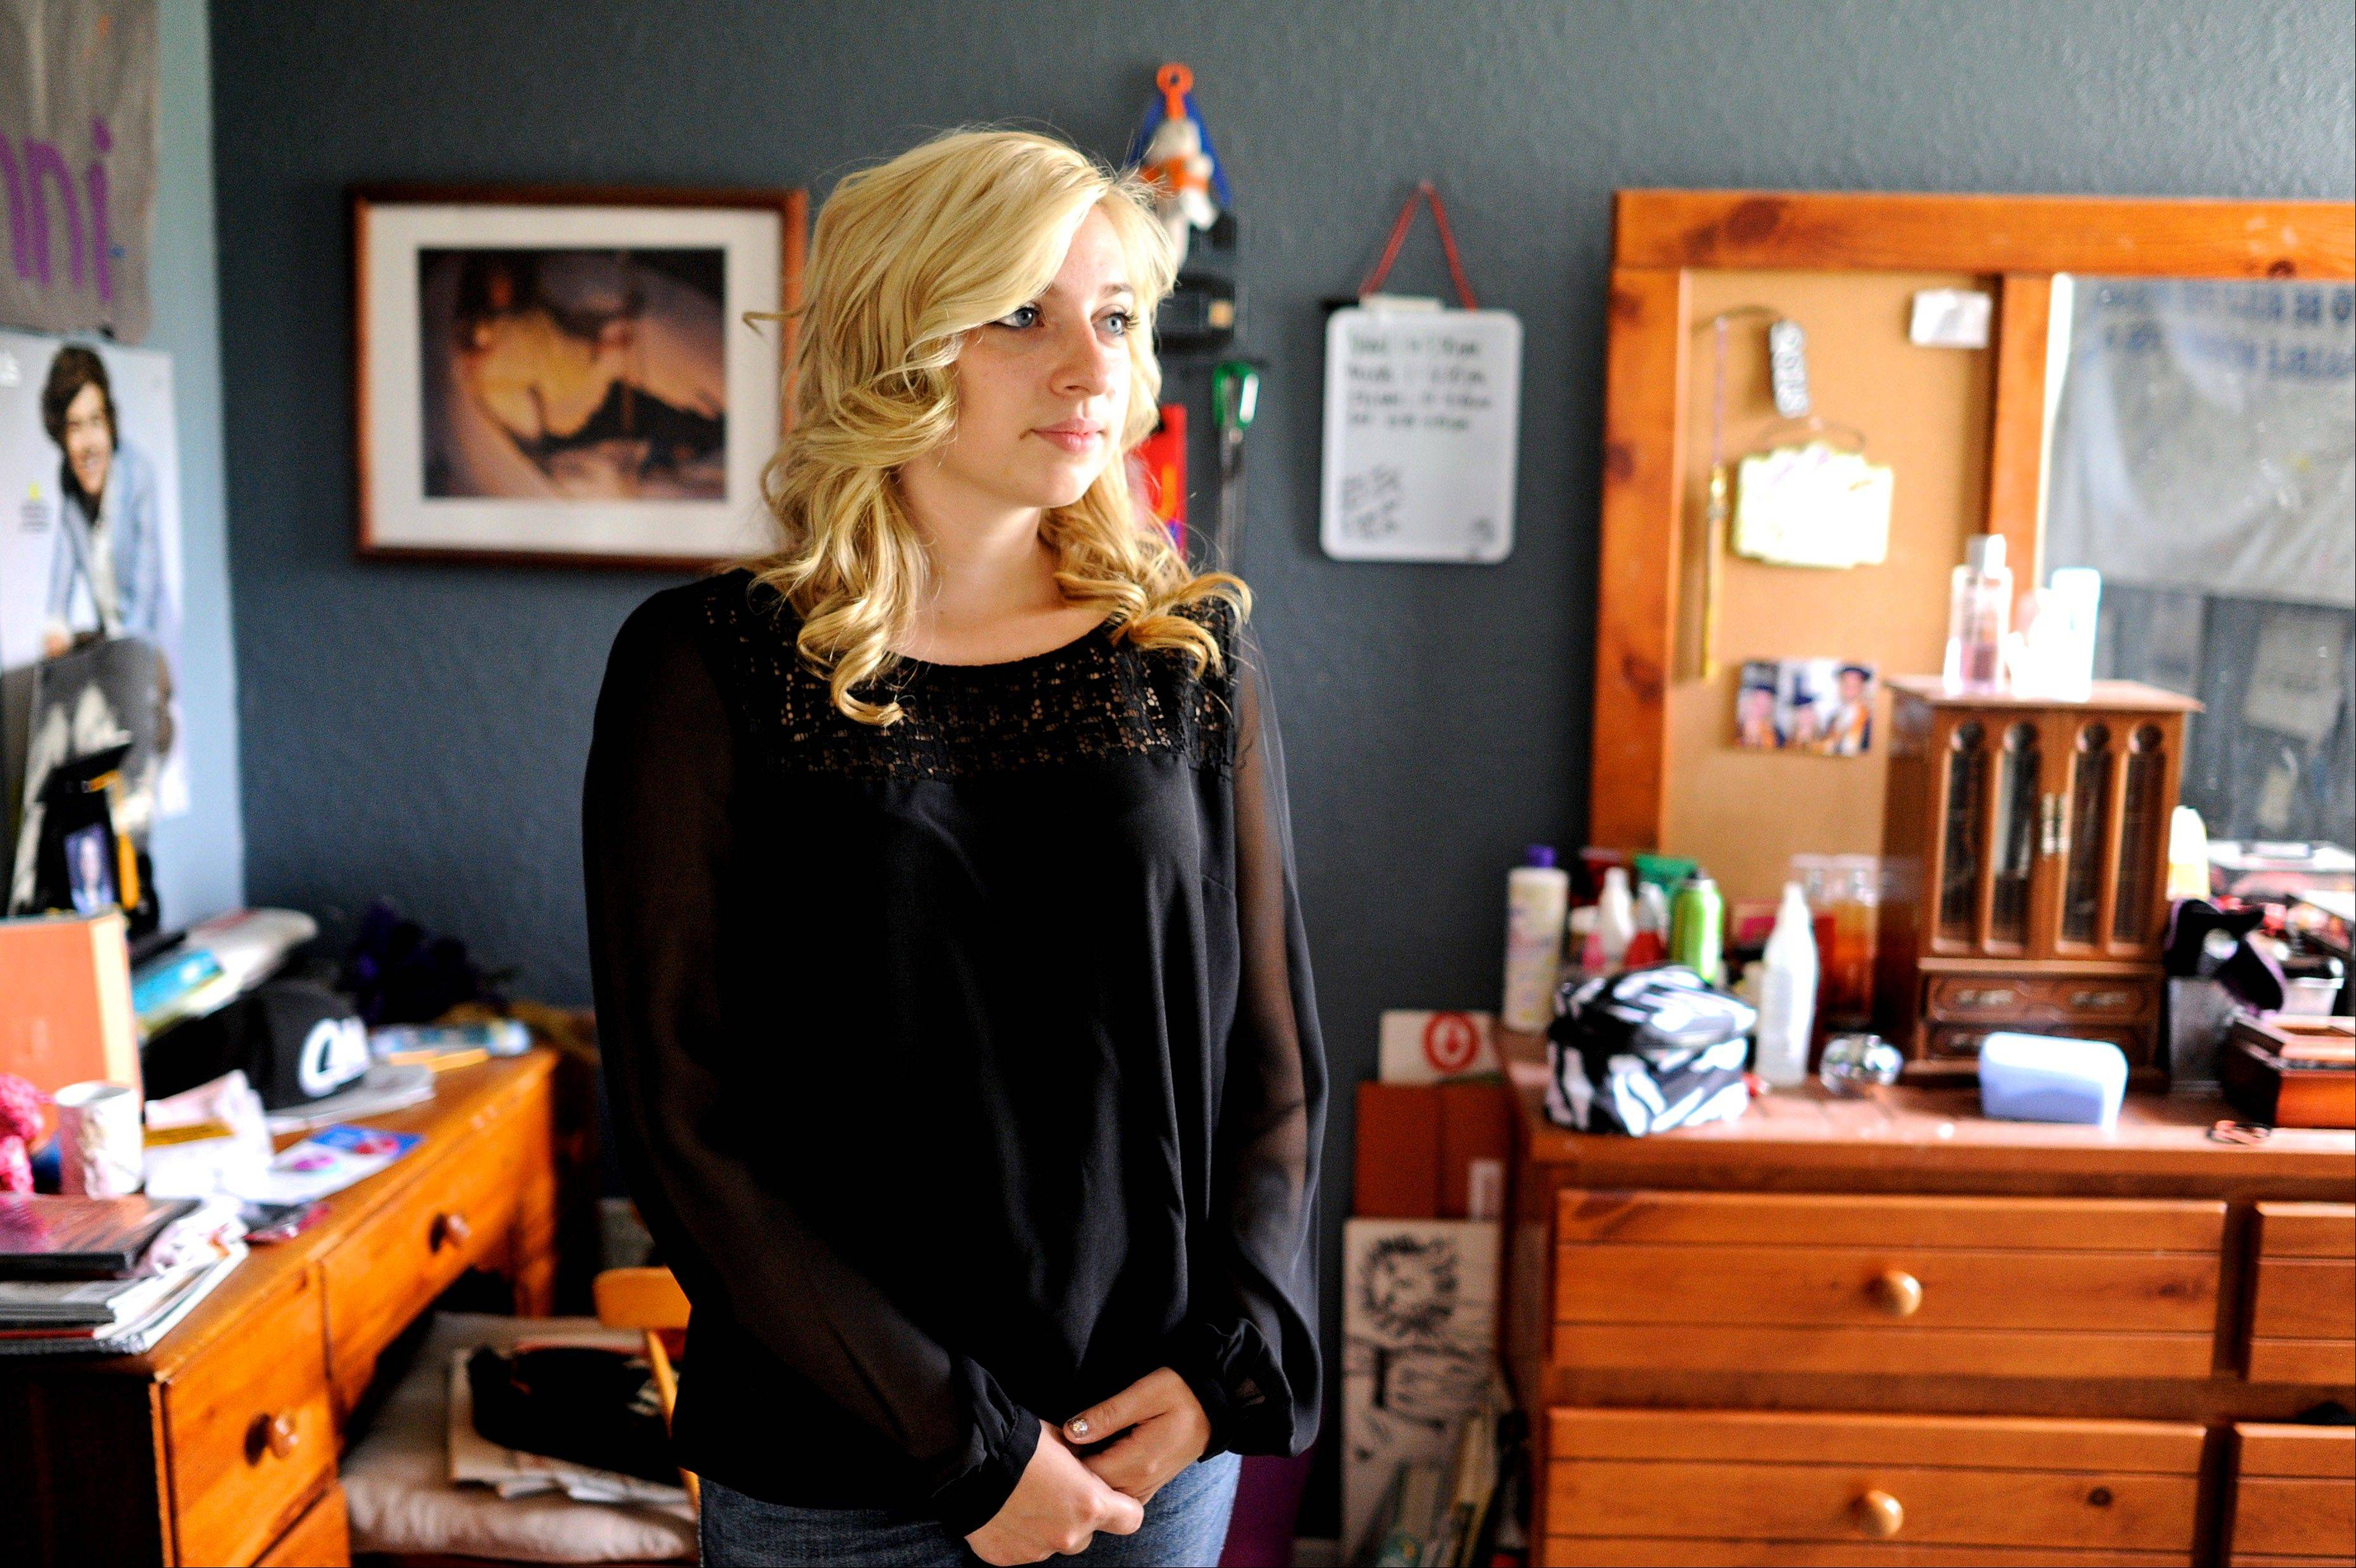 Sarah Ball, a victim of cyber bullying during her high school years, at her home Wednesday.